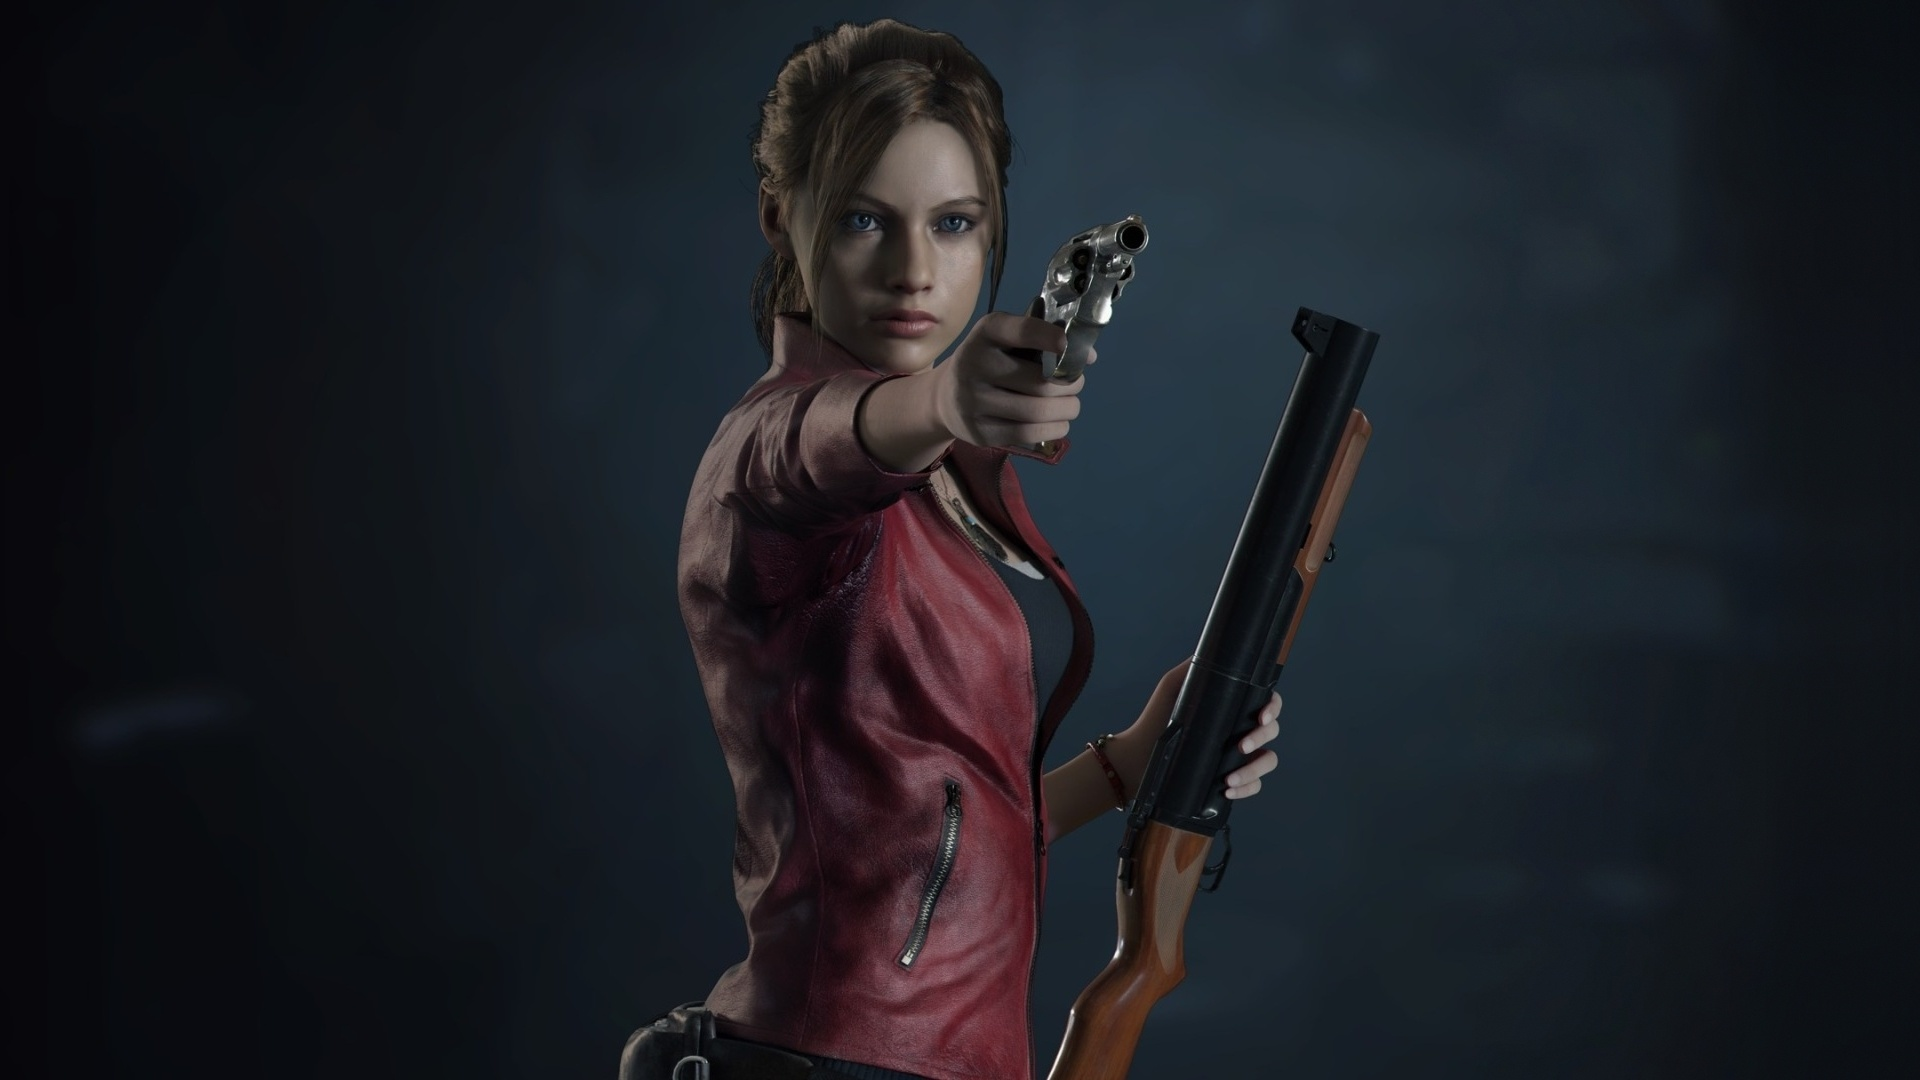 Resident Evil 2, video game, Claire Redfield, 1920x1080 wallpaper